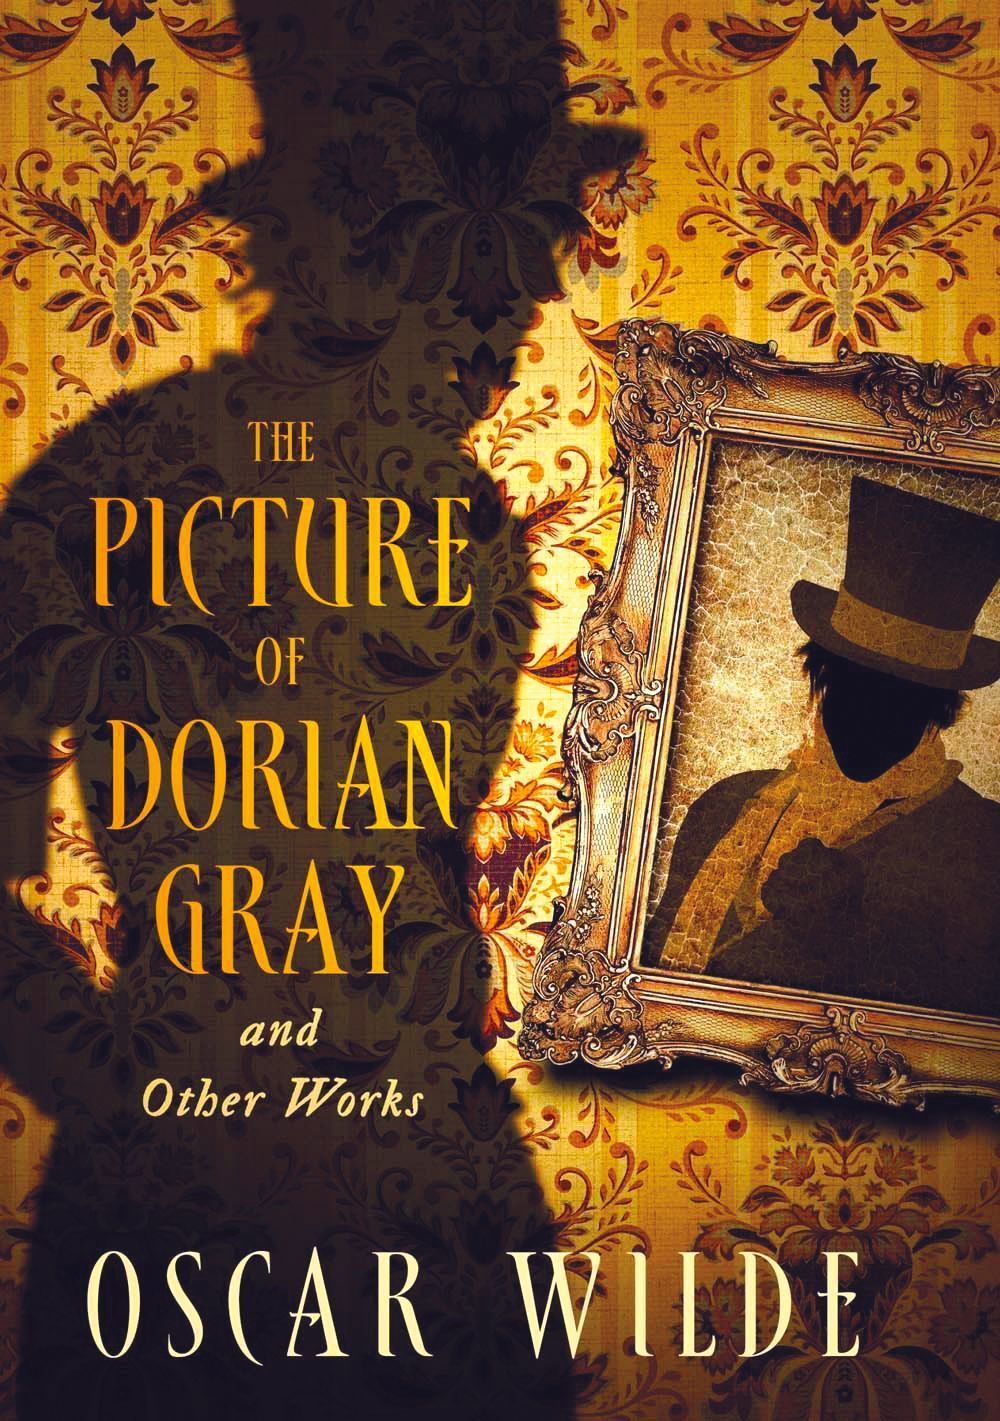 The Picture of Dorian  Gray, Oscar Wilde,  Barnes & Noble, 2014.